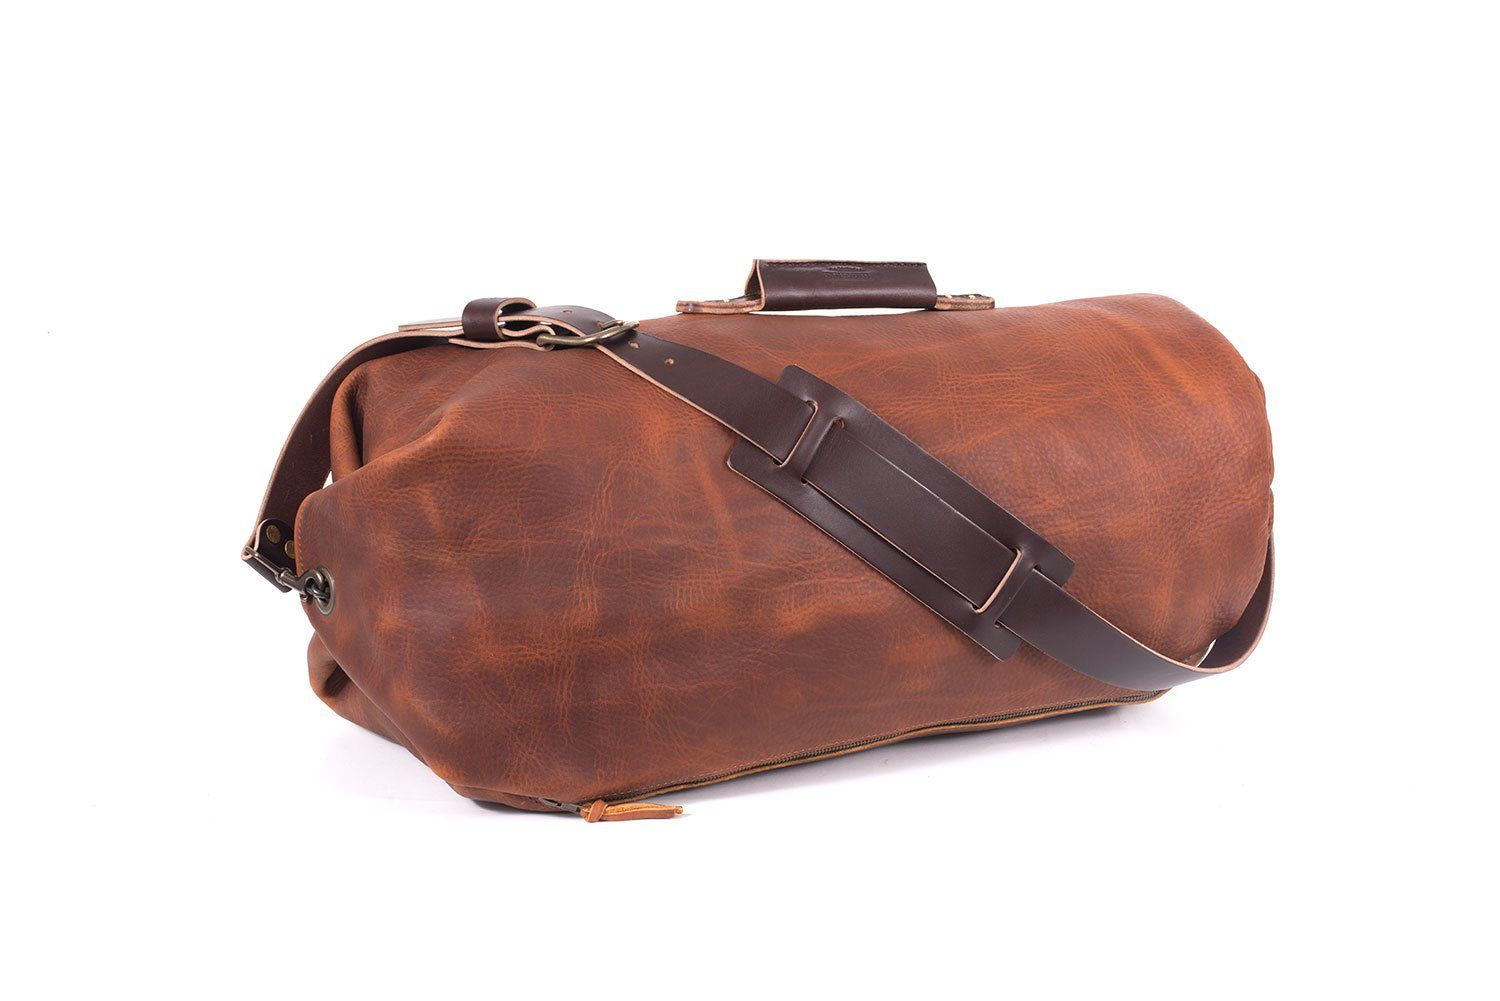 GUNNAR ZIPPERED LEATHER DUFFLE BAG - MILITARY STYLE DUFFLE BAG